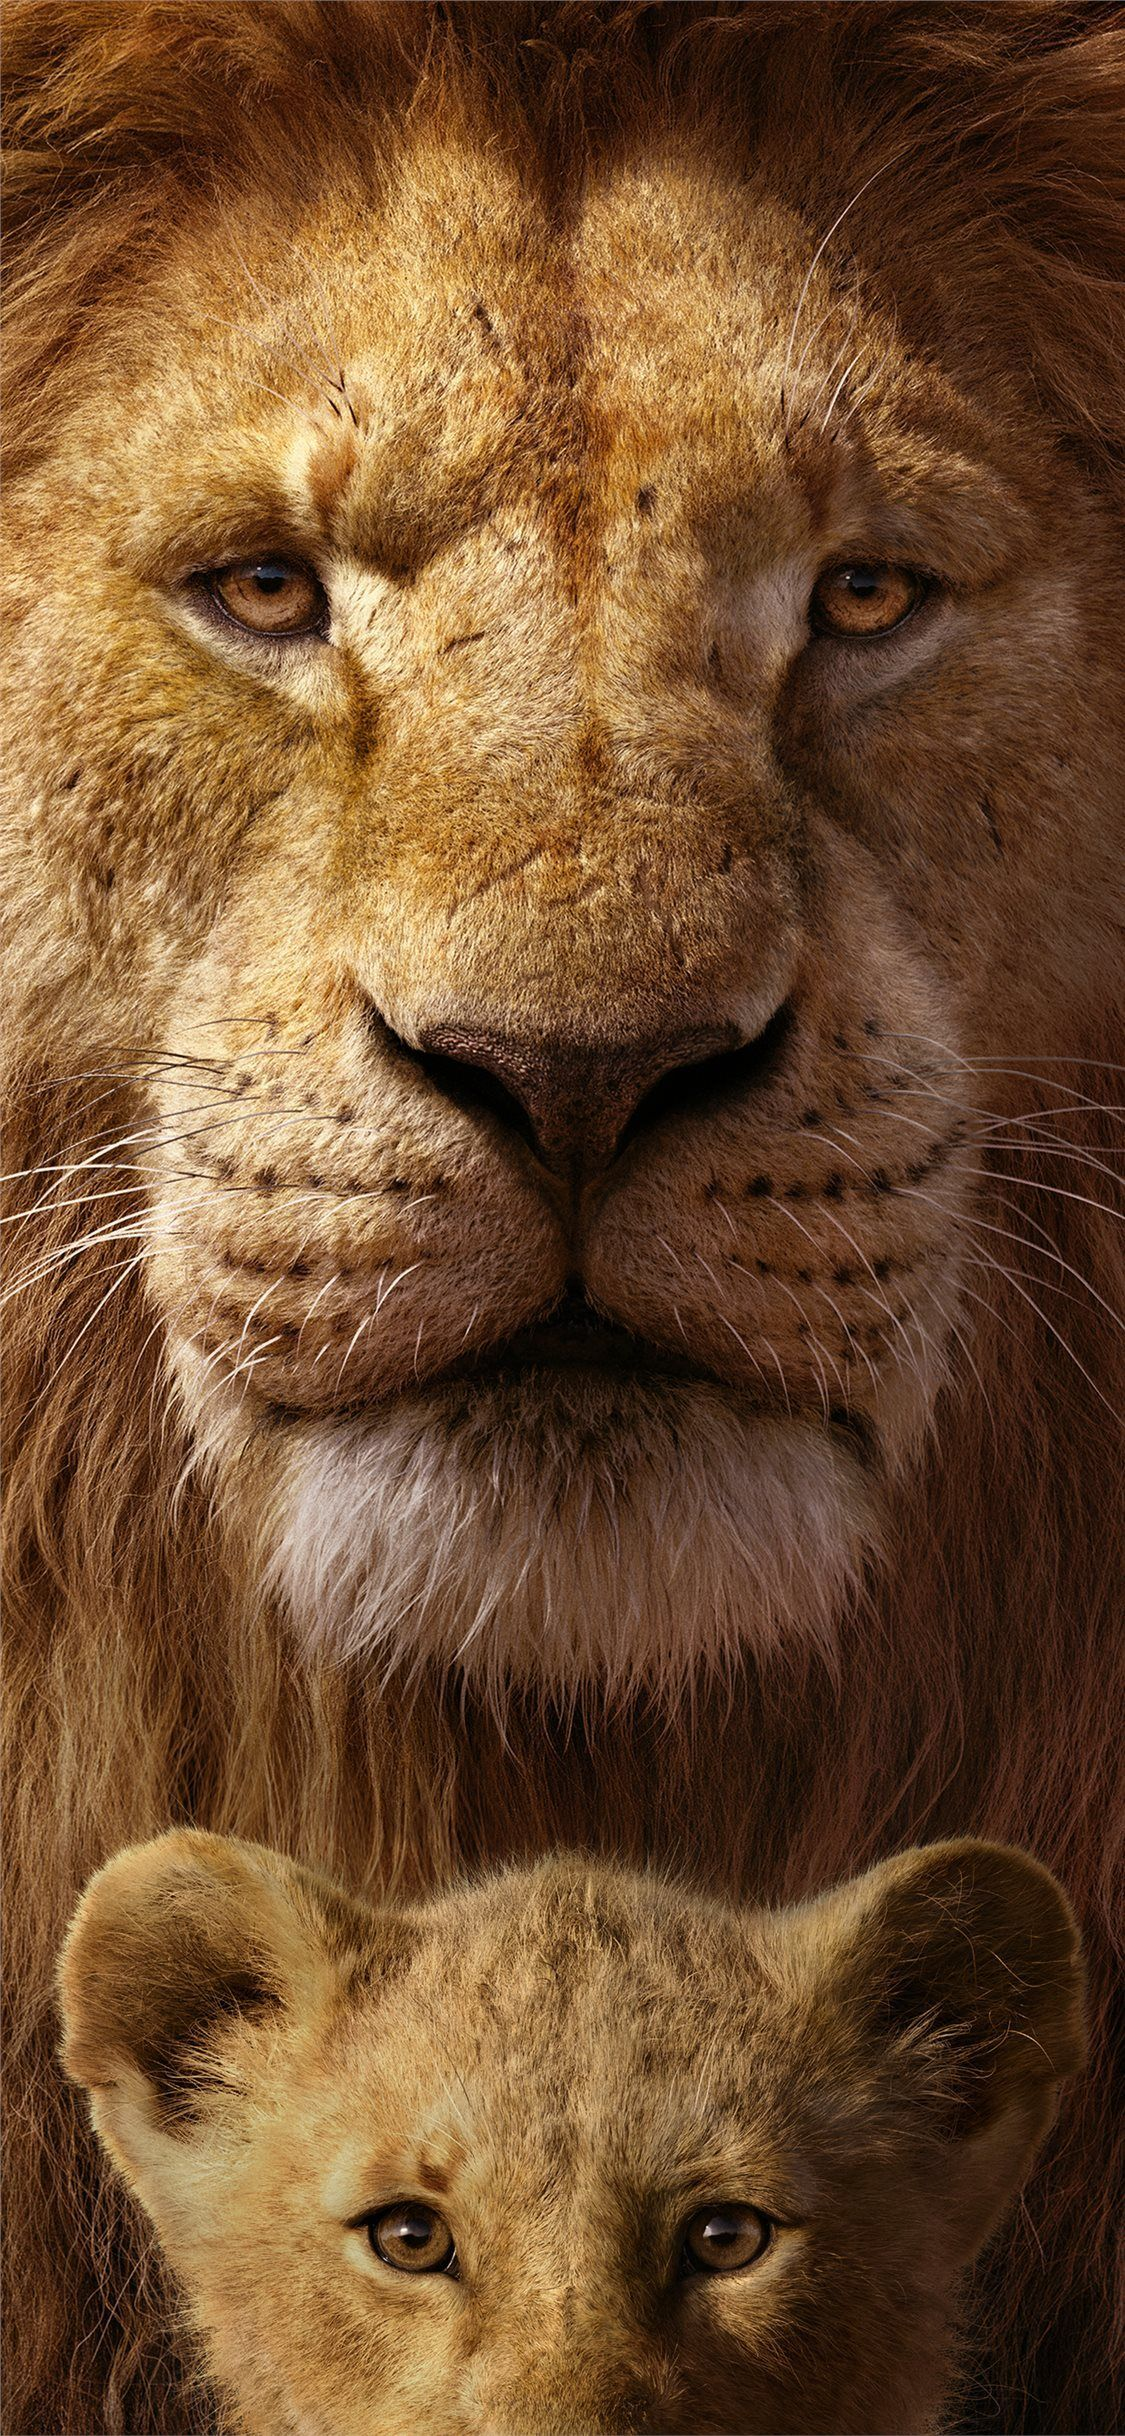 The Lion King 8k Wallpaper Free Download The The Lion King 8k Wallpaper Wallpap Fondos De Pantalla Animales Fondos De Pantalla Verde Fondos De Pantalla Cute